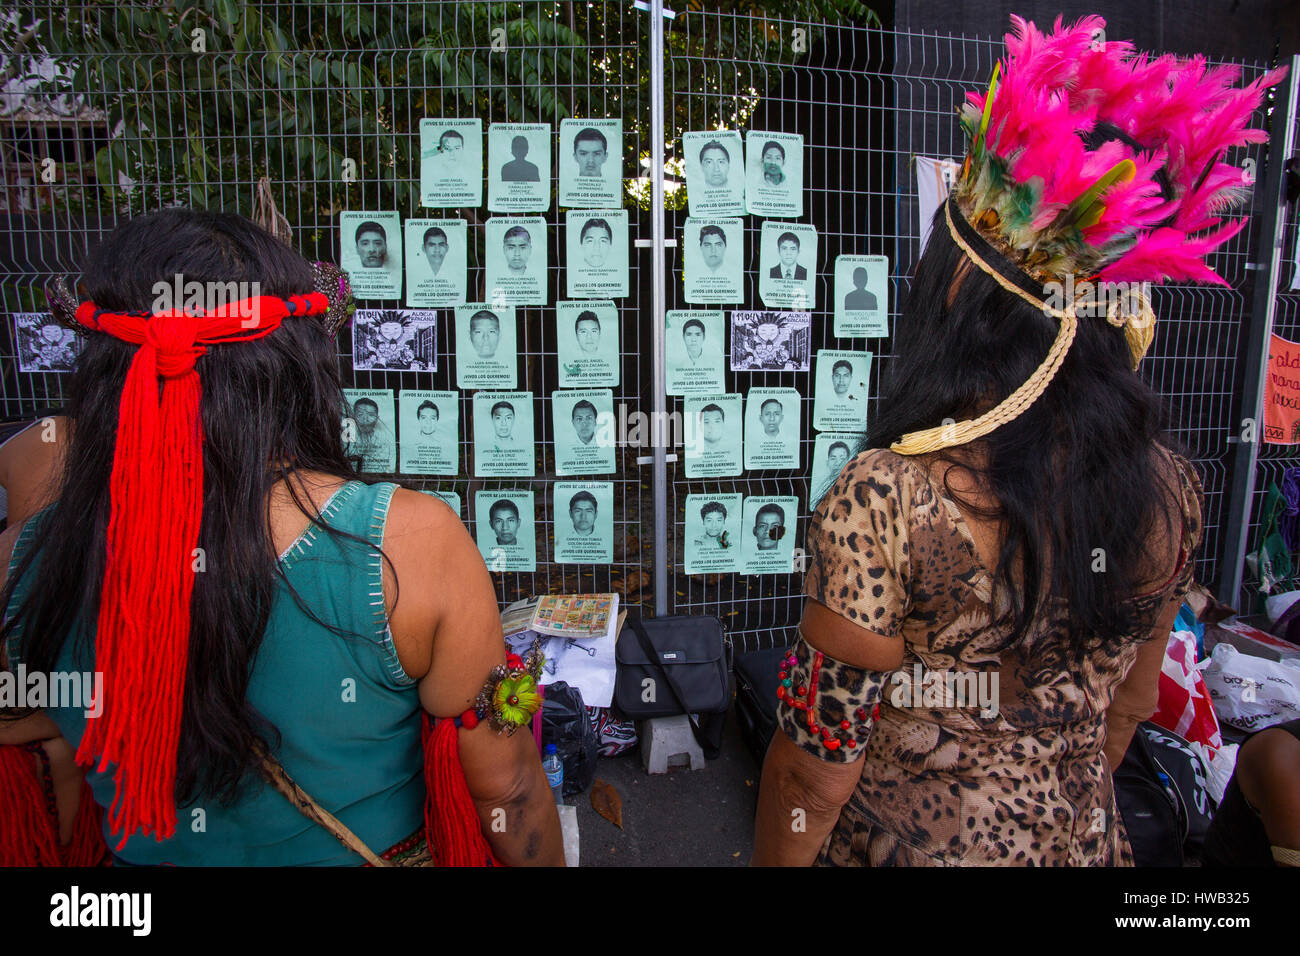 Indian day in Rio de Janeiro, indians put in a wall pictures of people that disappeared in Mexico, Maracanã, - Stock Image